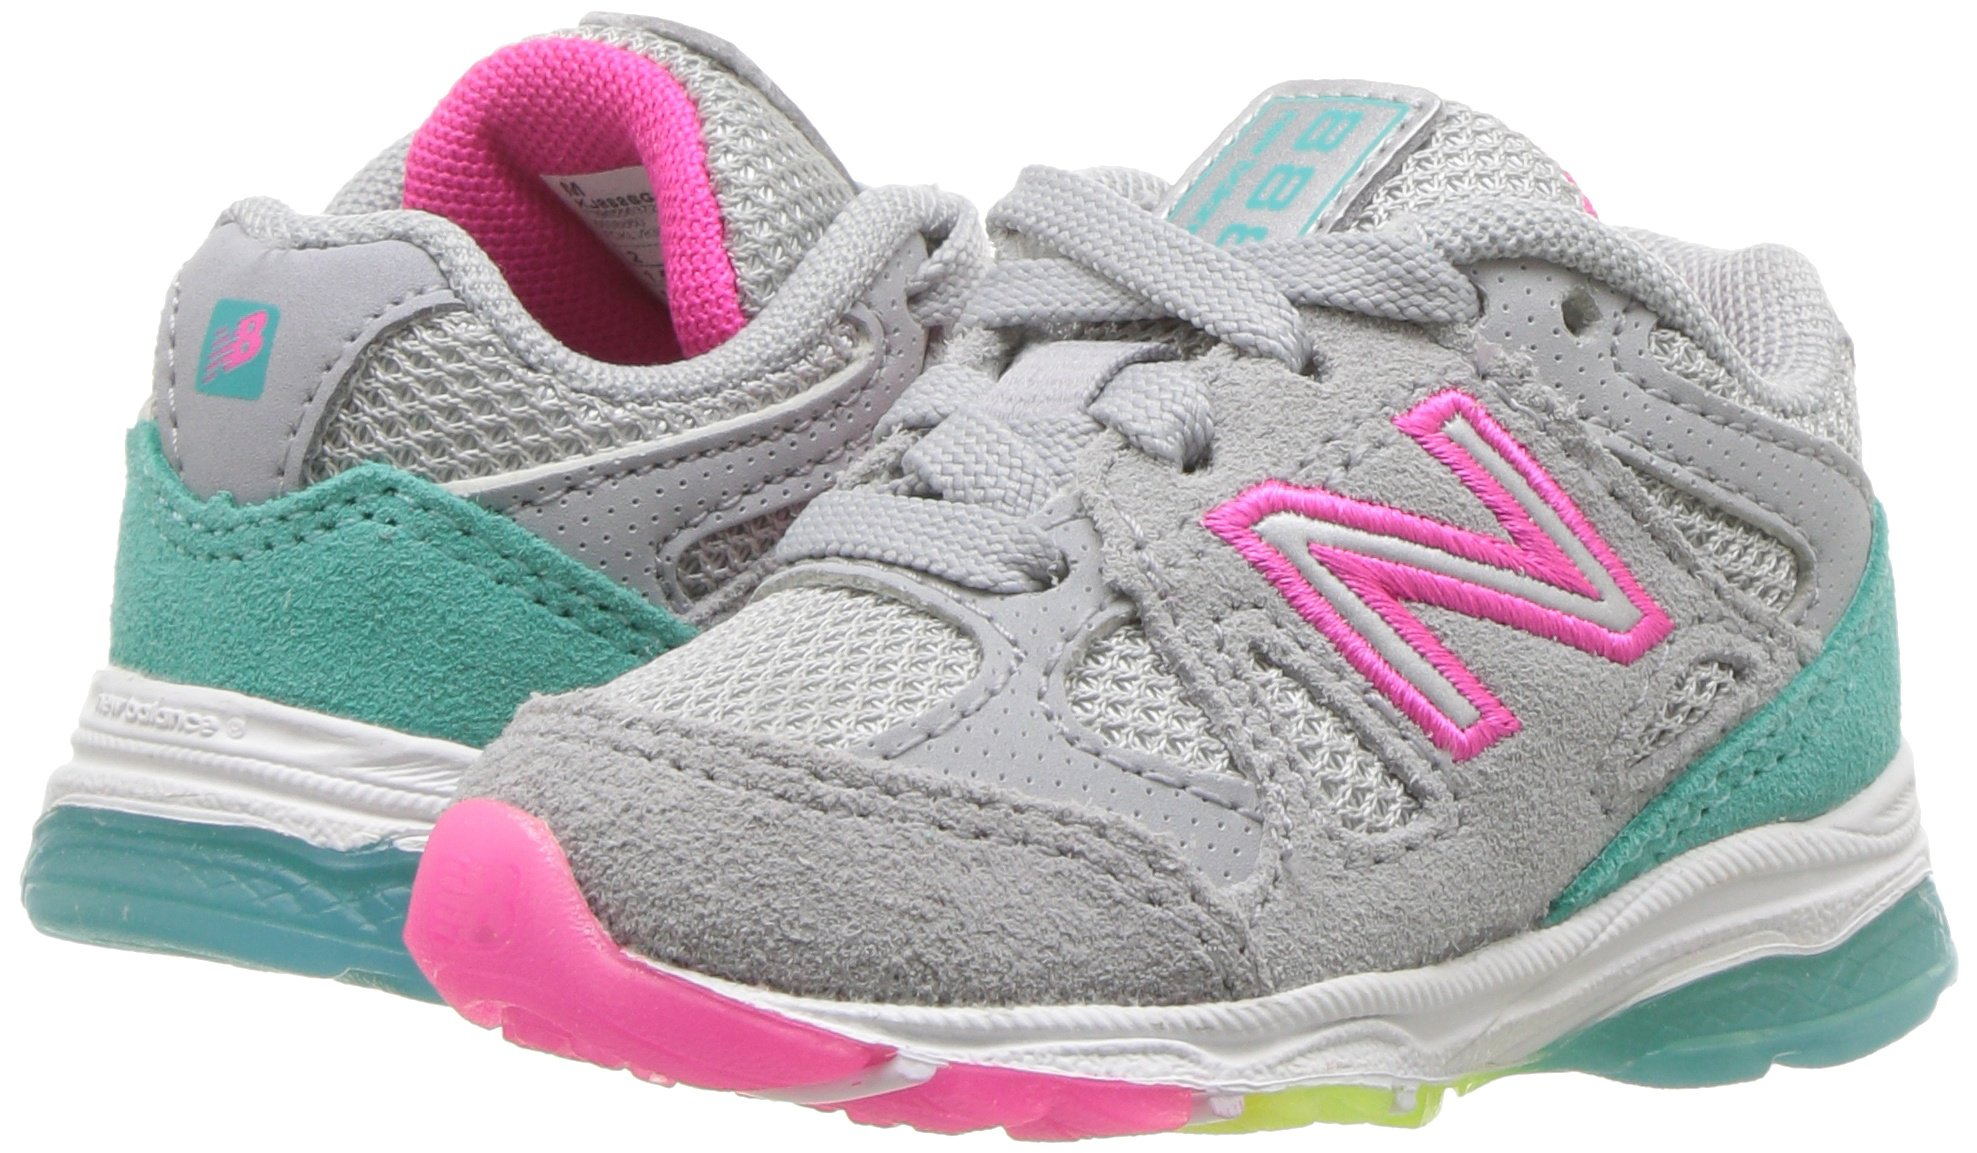 New Balance Girls' 888v1 Running Shoe, Silver Mink/Rainbow, 6 W US Big Kid by New Balance (Image #6)